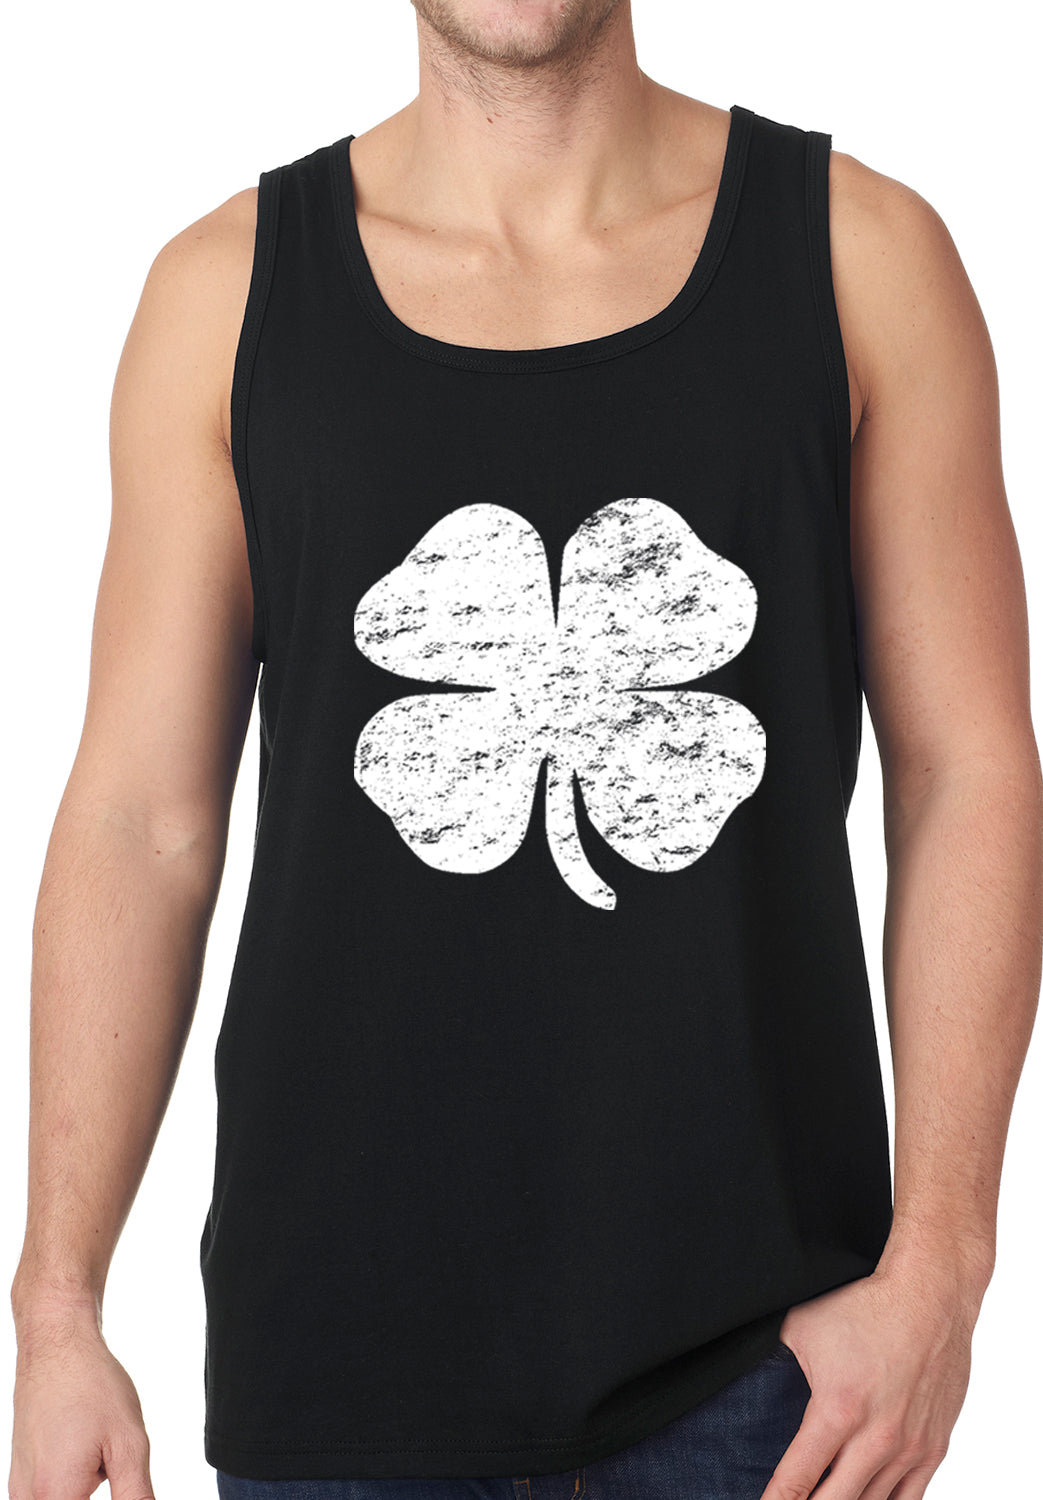 b838e0ff St. Patrick's Day Vintage Distressed 4 Leaf Clover Tanktop – Bewild